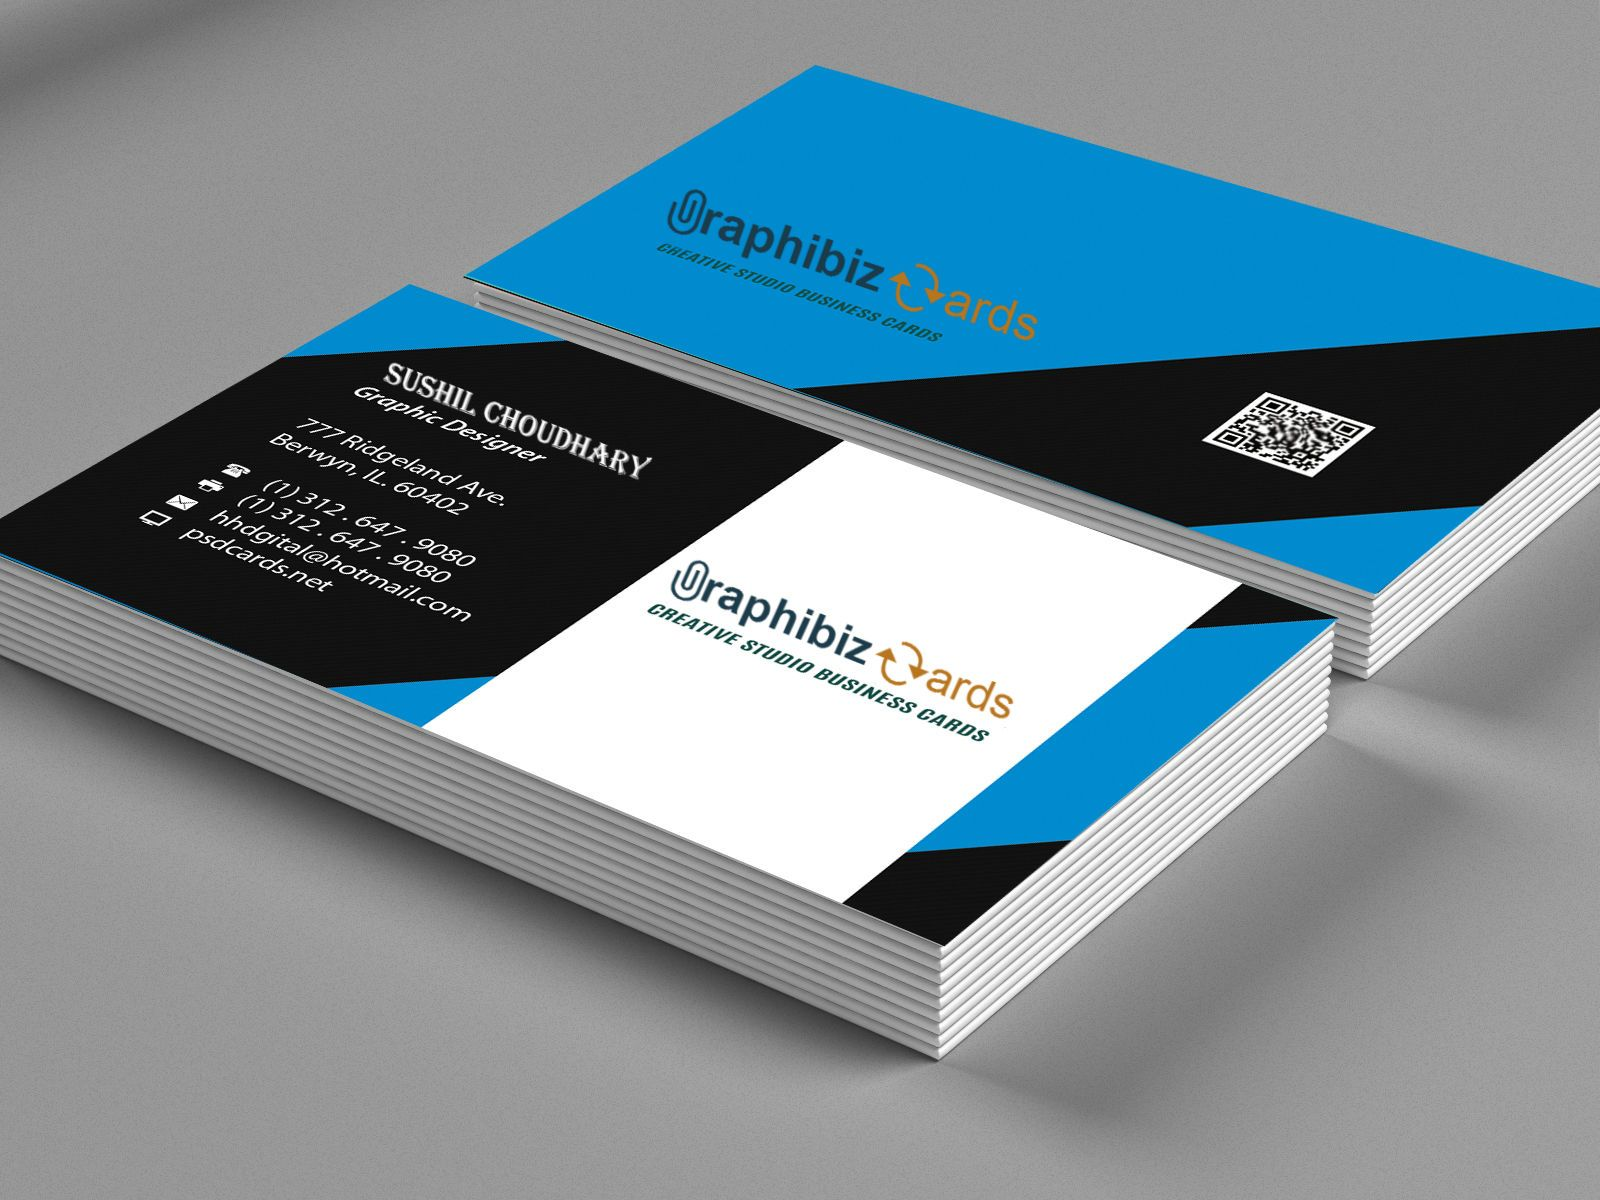 Professional Business Card Design Chandigarh Mohali Punjab Panchkula Delhi India